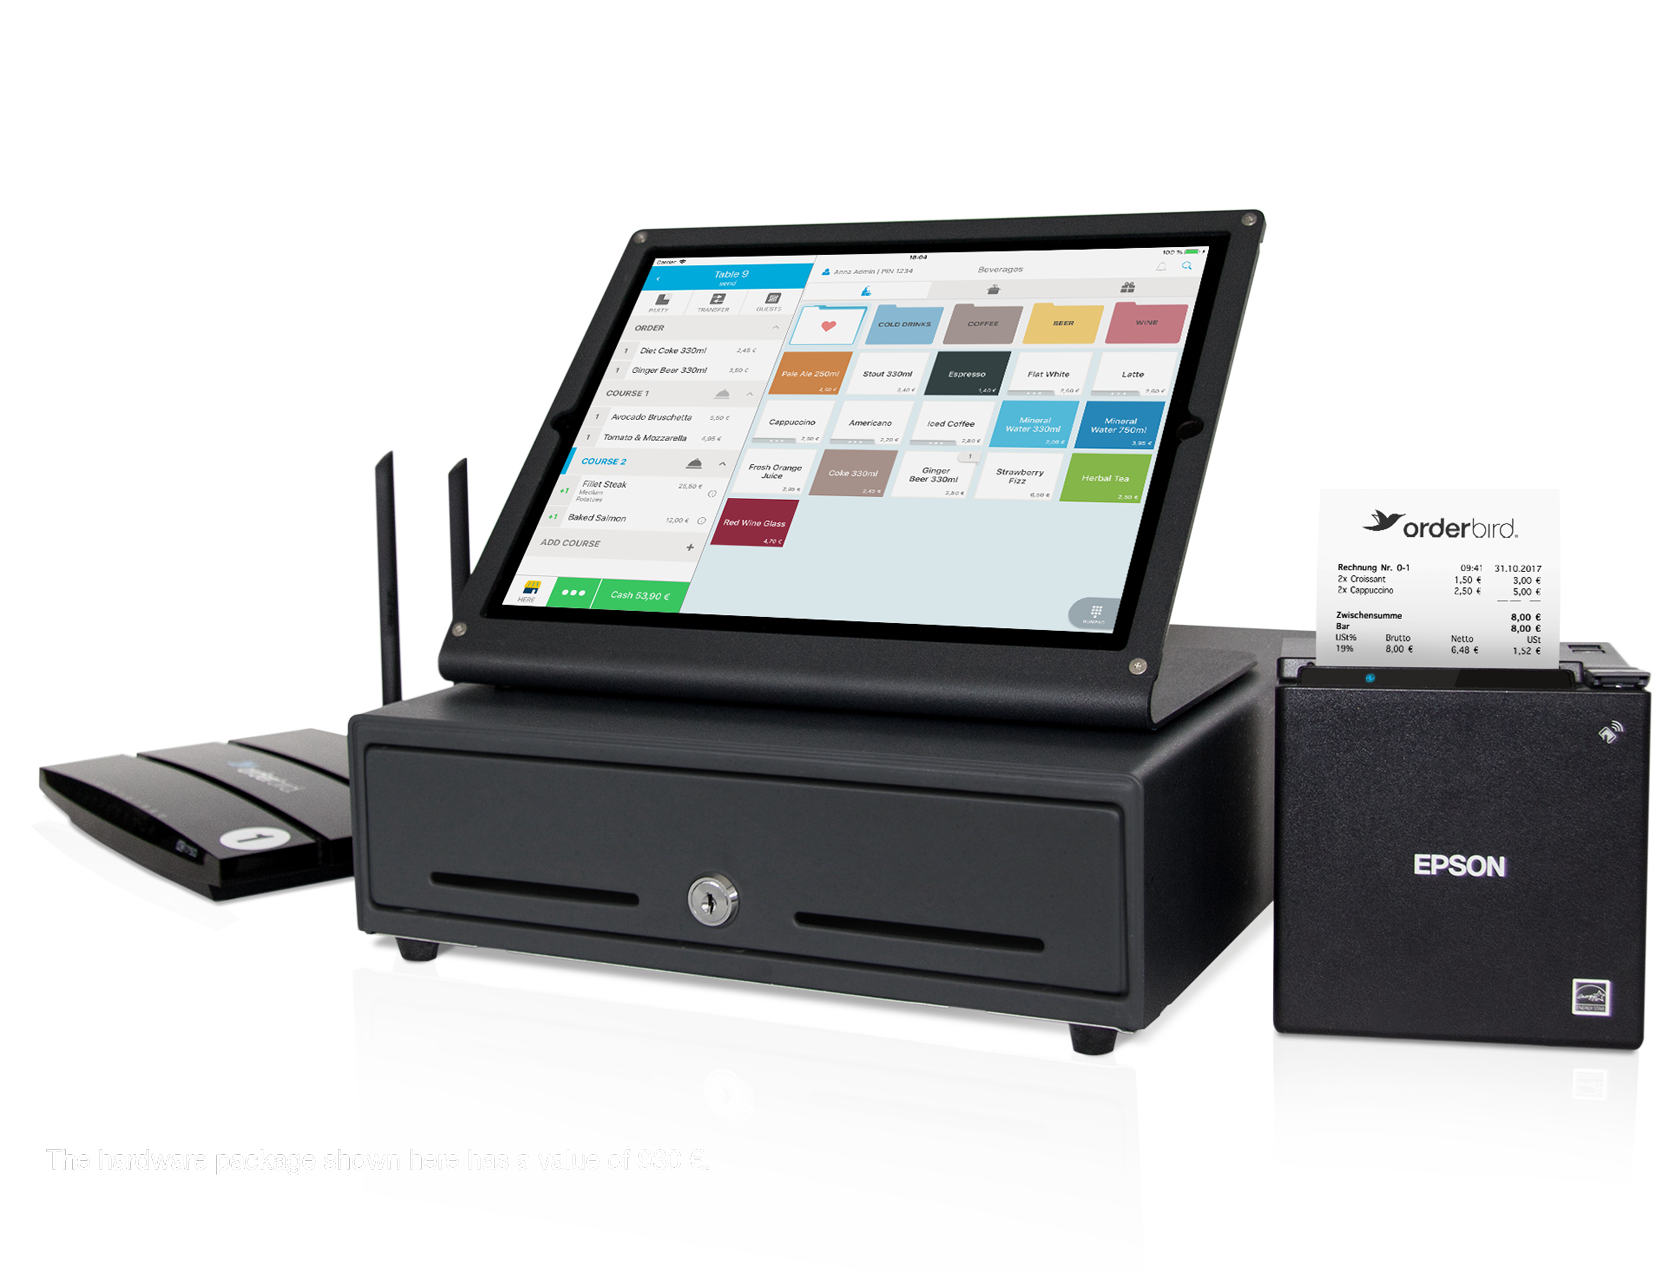 Ipad Pos System For Restaurants Prices